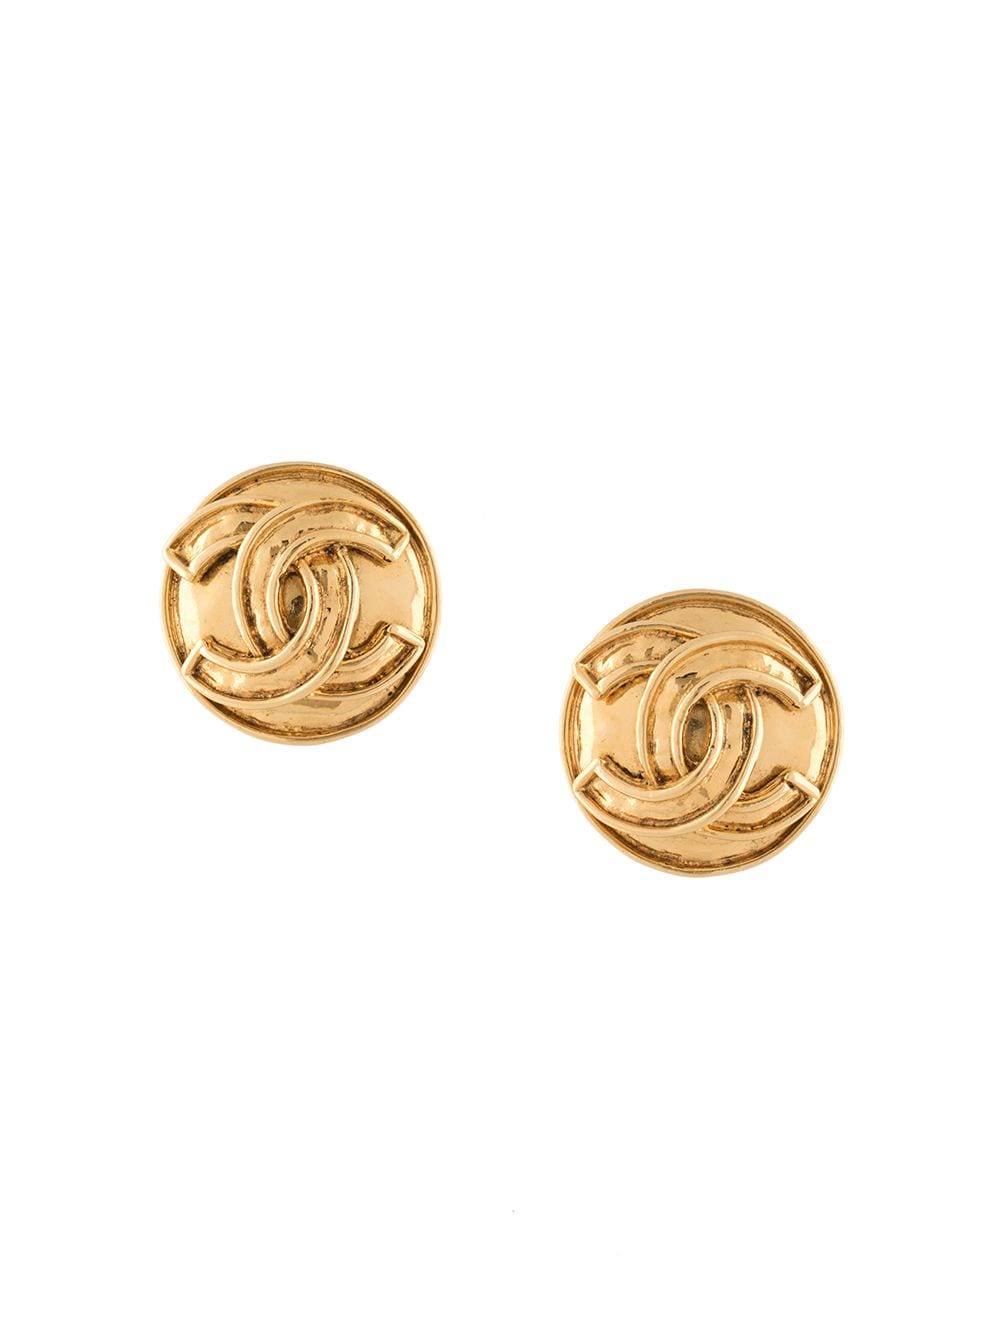 Chanel Pre-Owned 1994 CC button earrings - GOLD von Chanel Pre-Owned